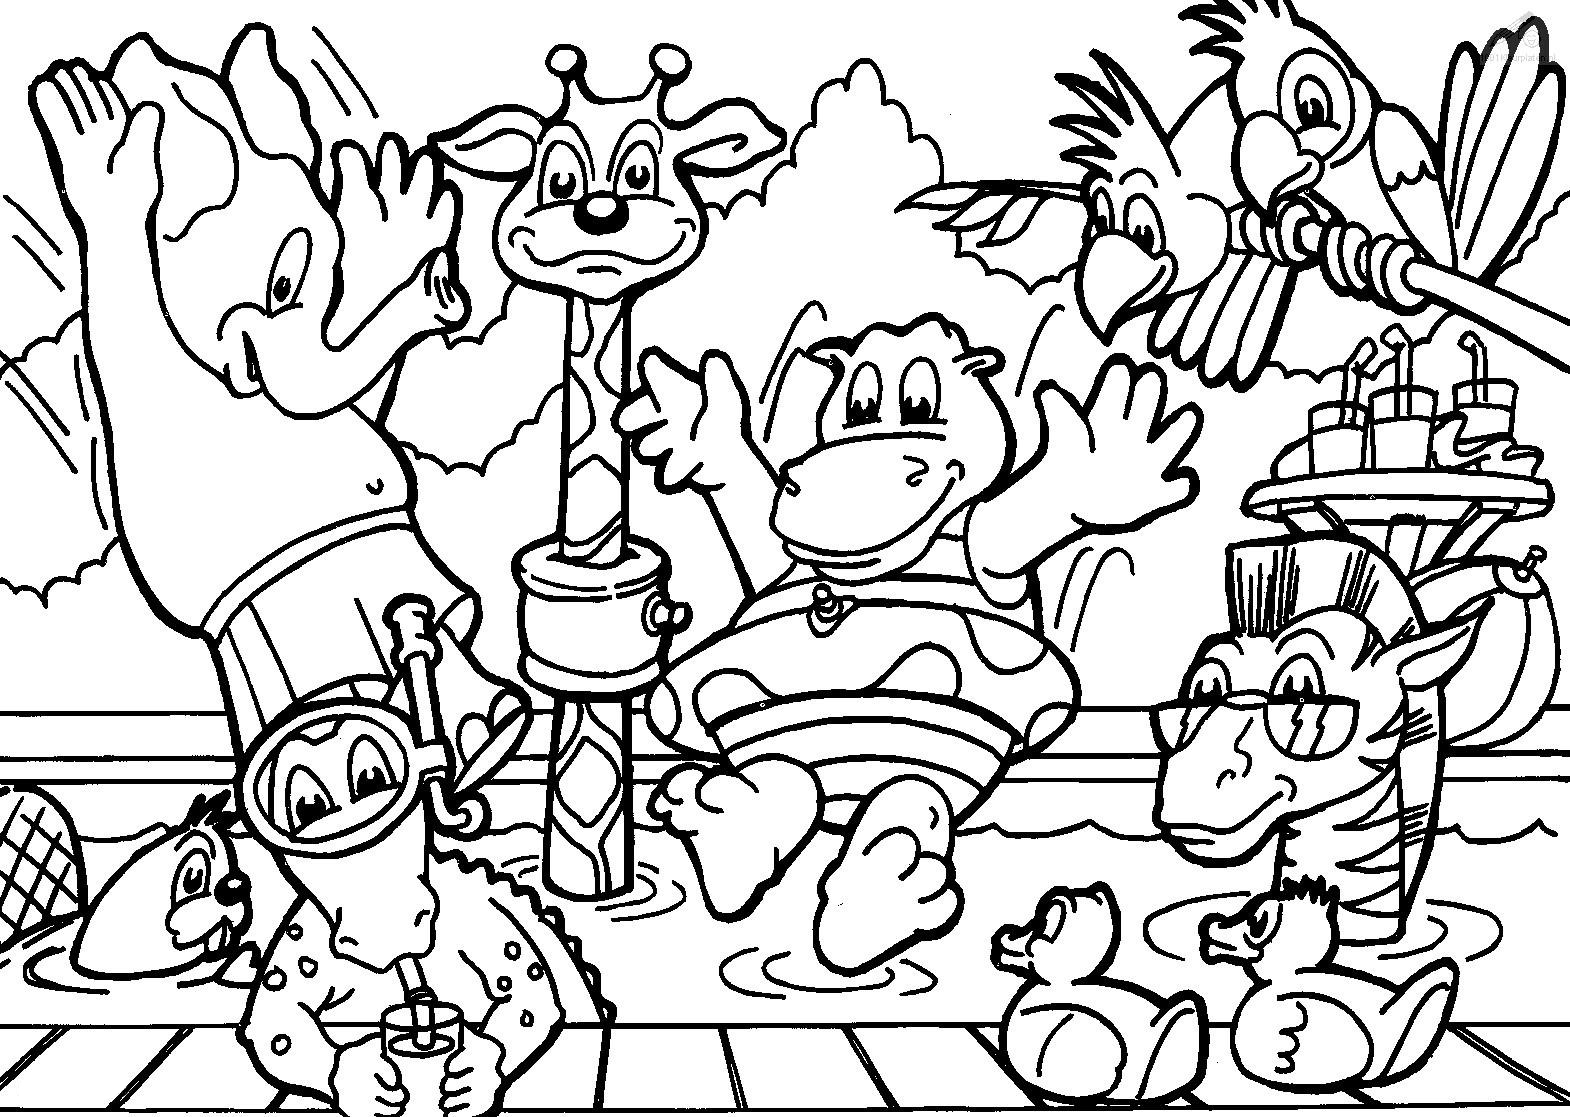 animal coloring page jungle coloring pages best coloring pages for kids coloring animal page